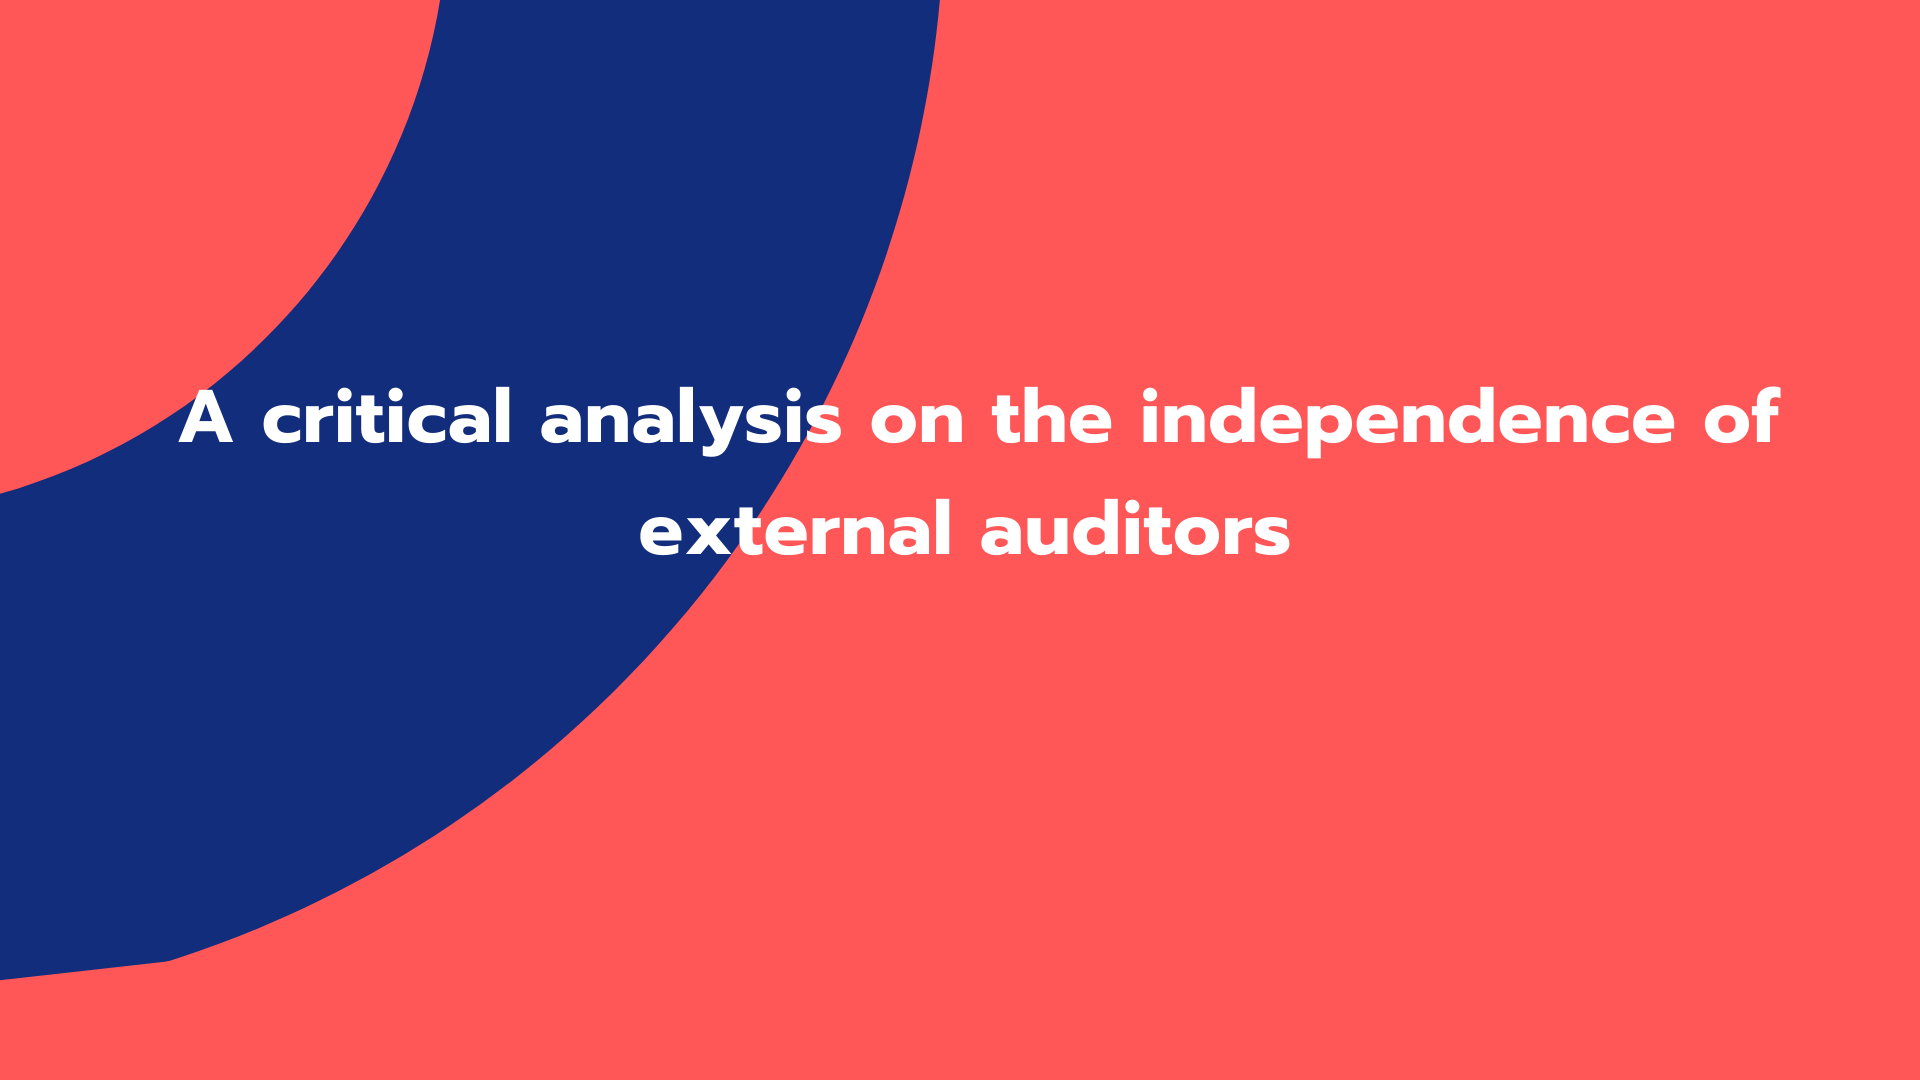 A critical analysis on independence of external auditors